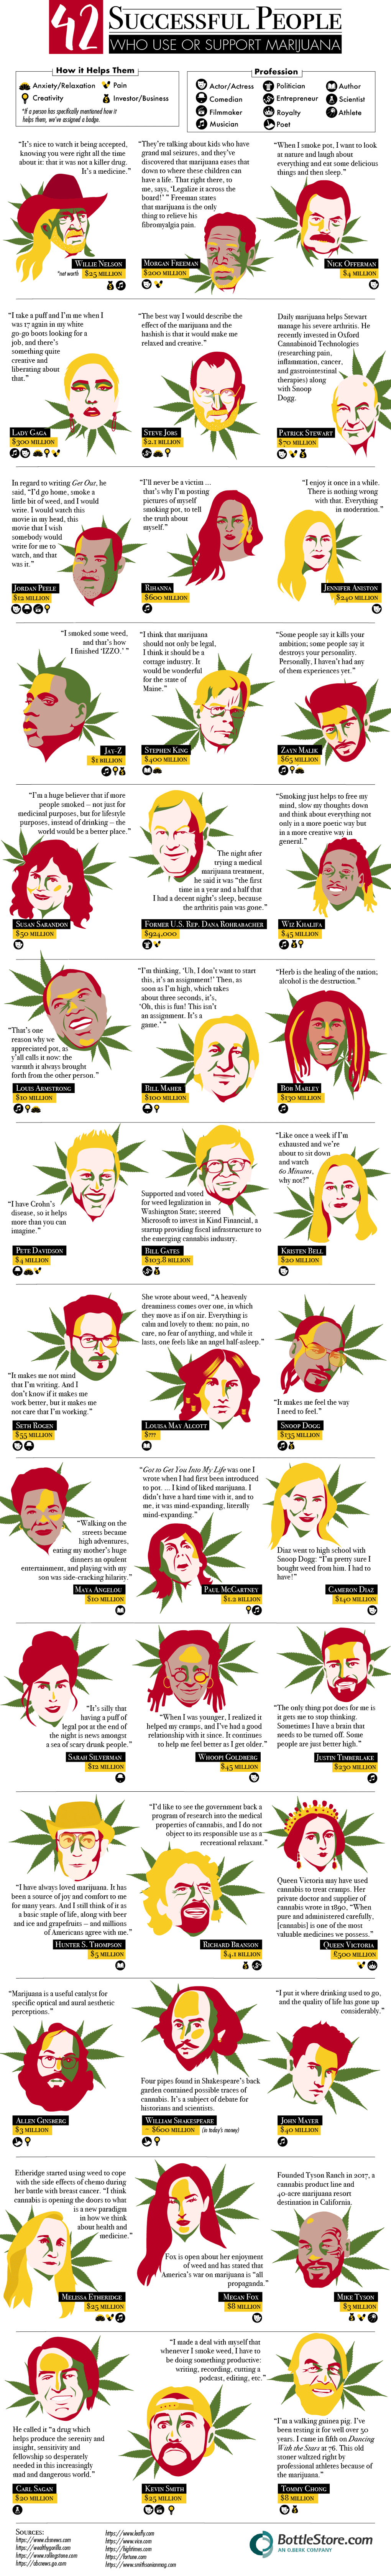 42 Successful People Who Use Or Support Marijuana - BottleStore.com - Infographic